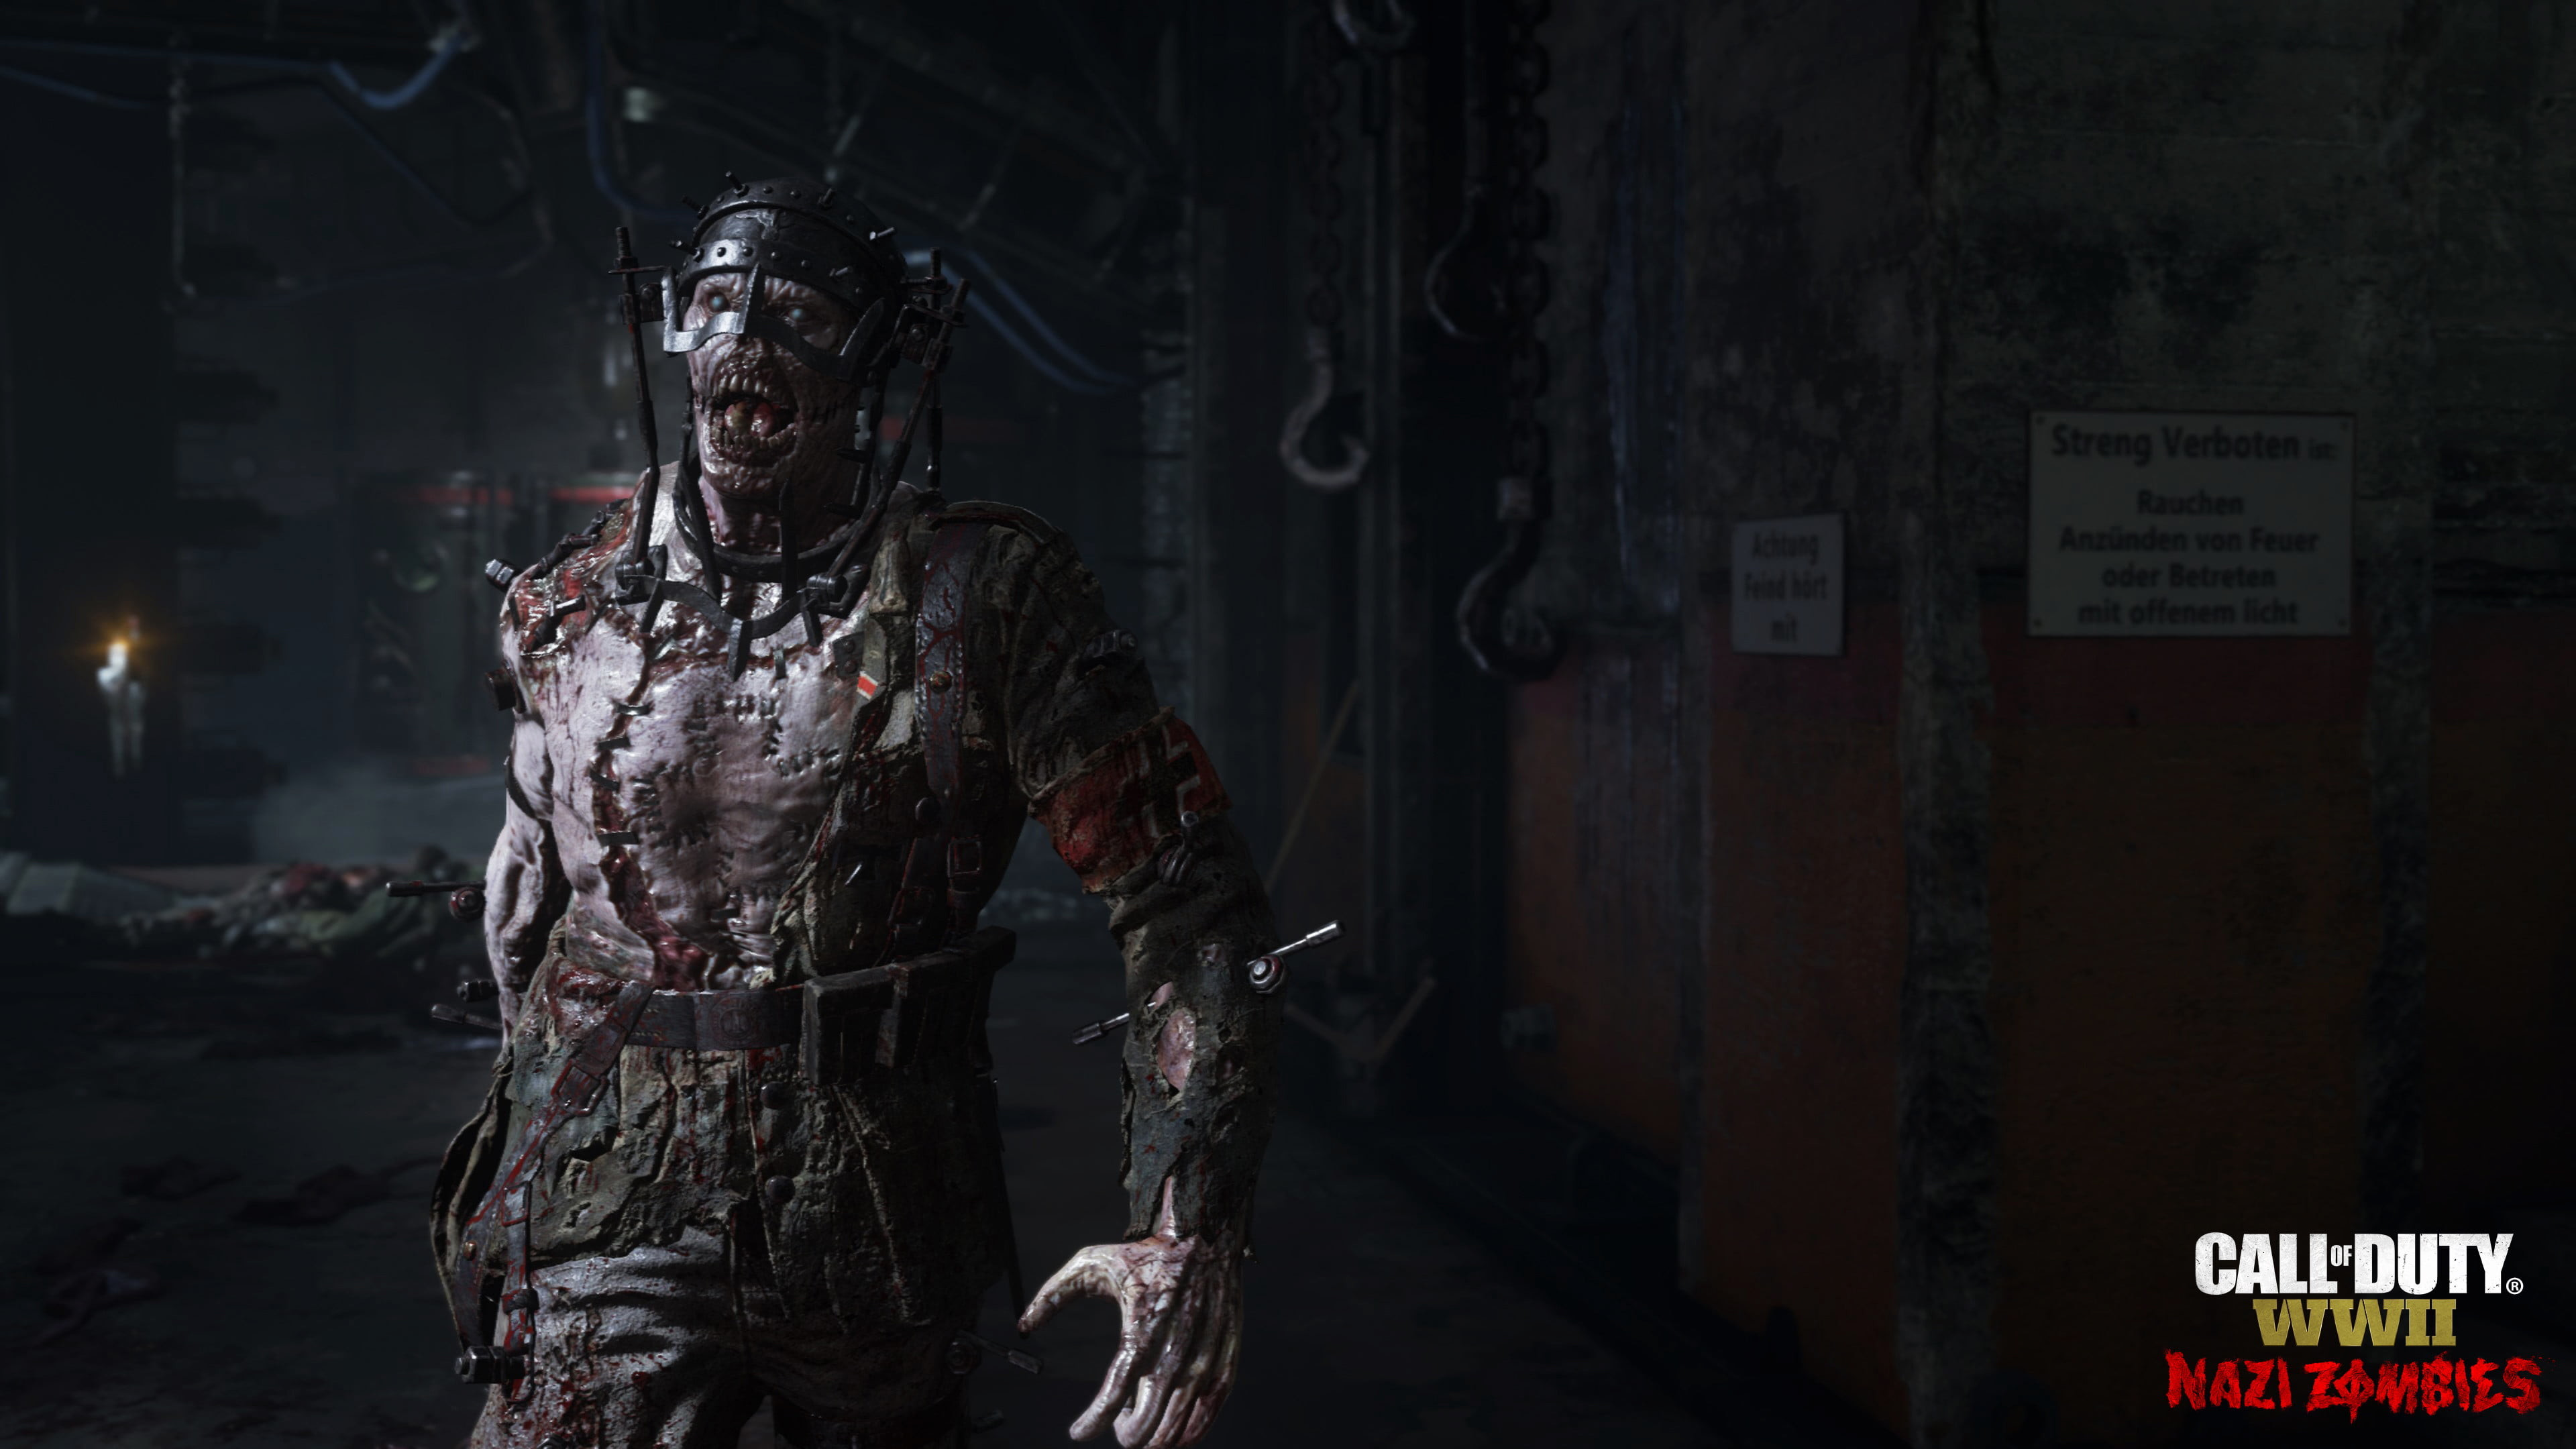 Res: 3840x2160, Call Of Duty WWII Nazi Zombies 4k